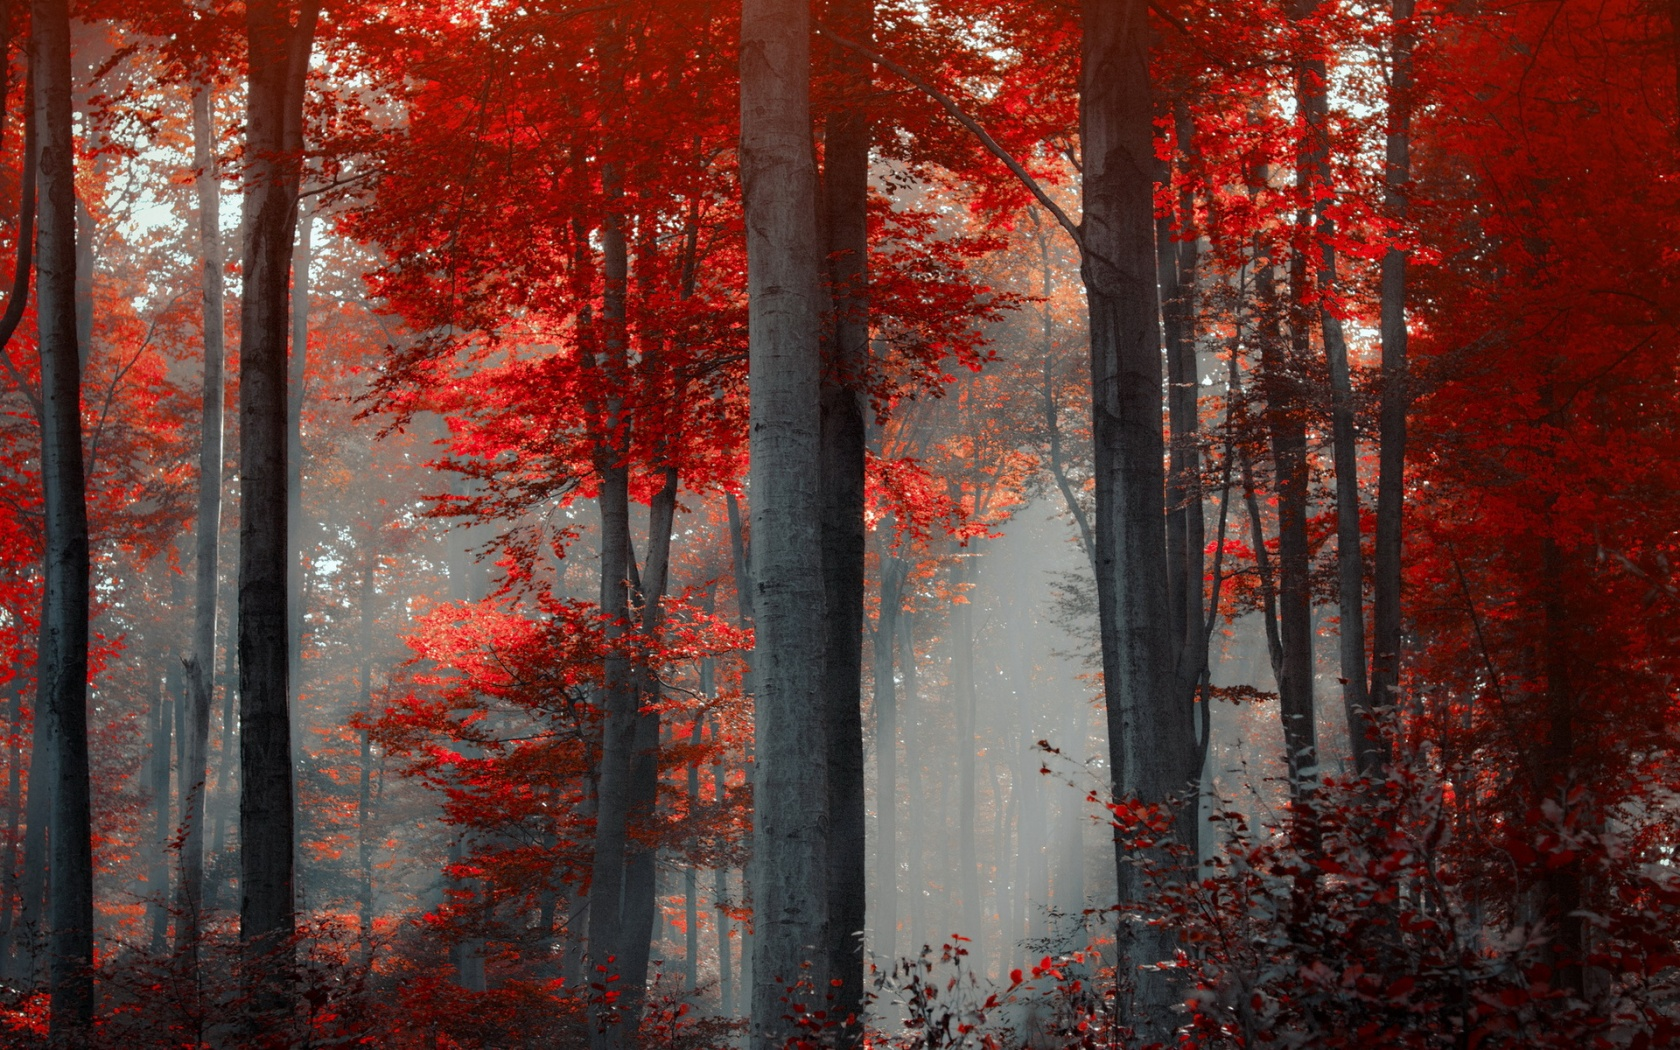 Red Forest Landscape 33539 1920x1080 px